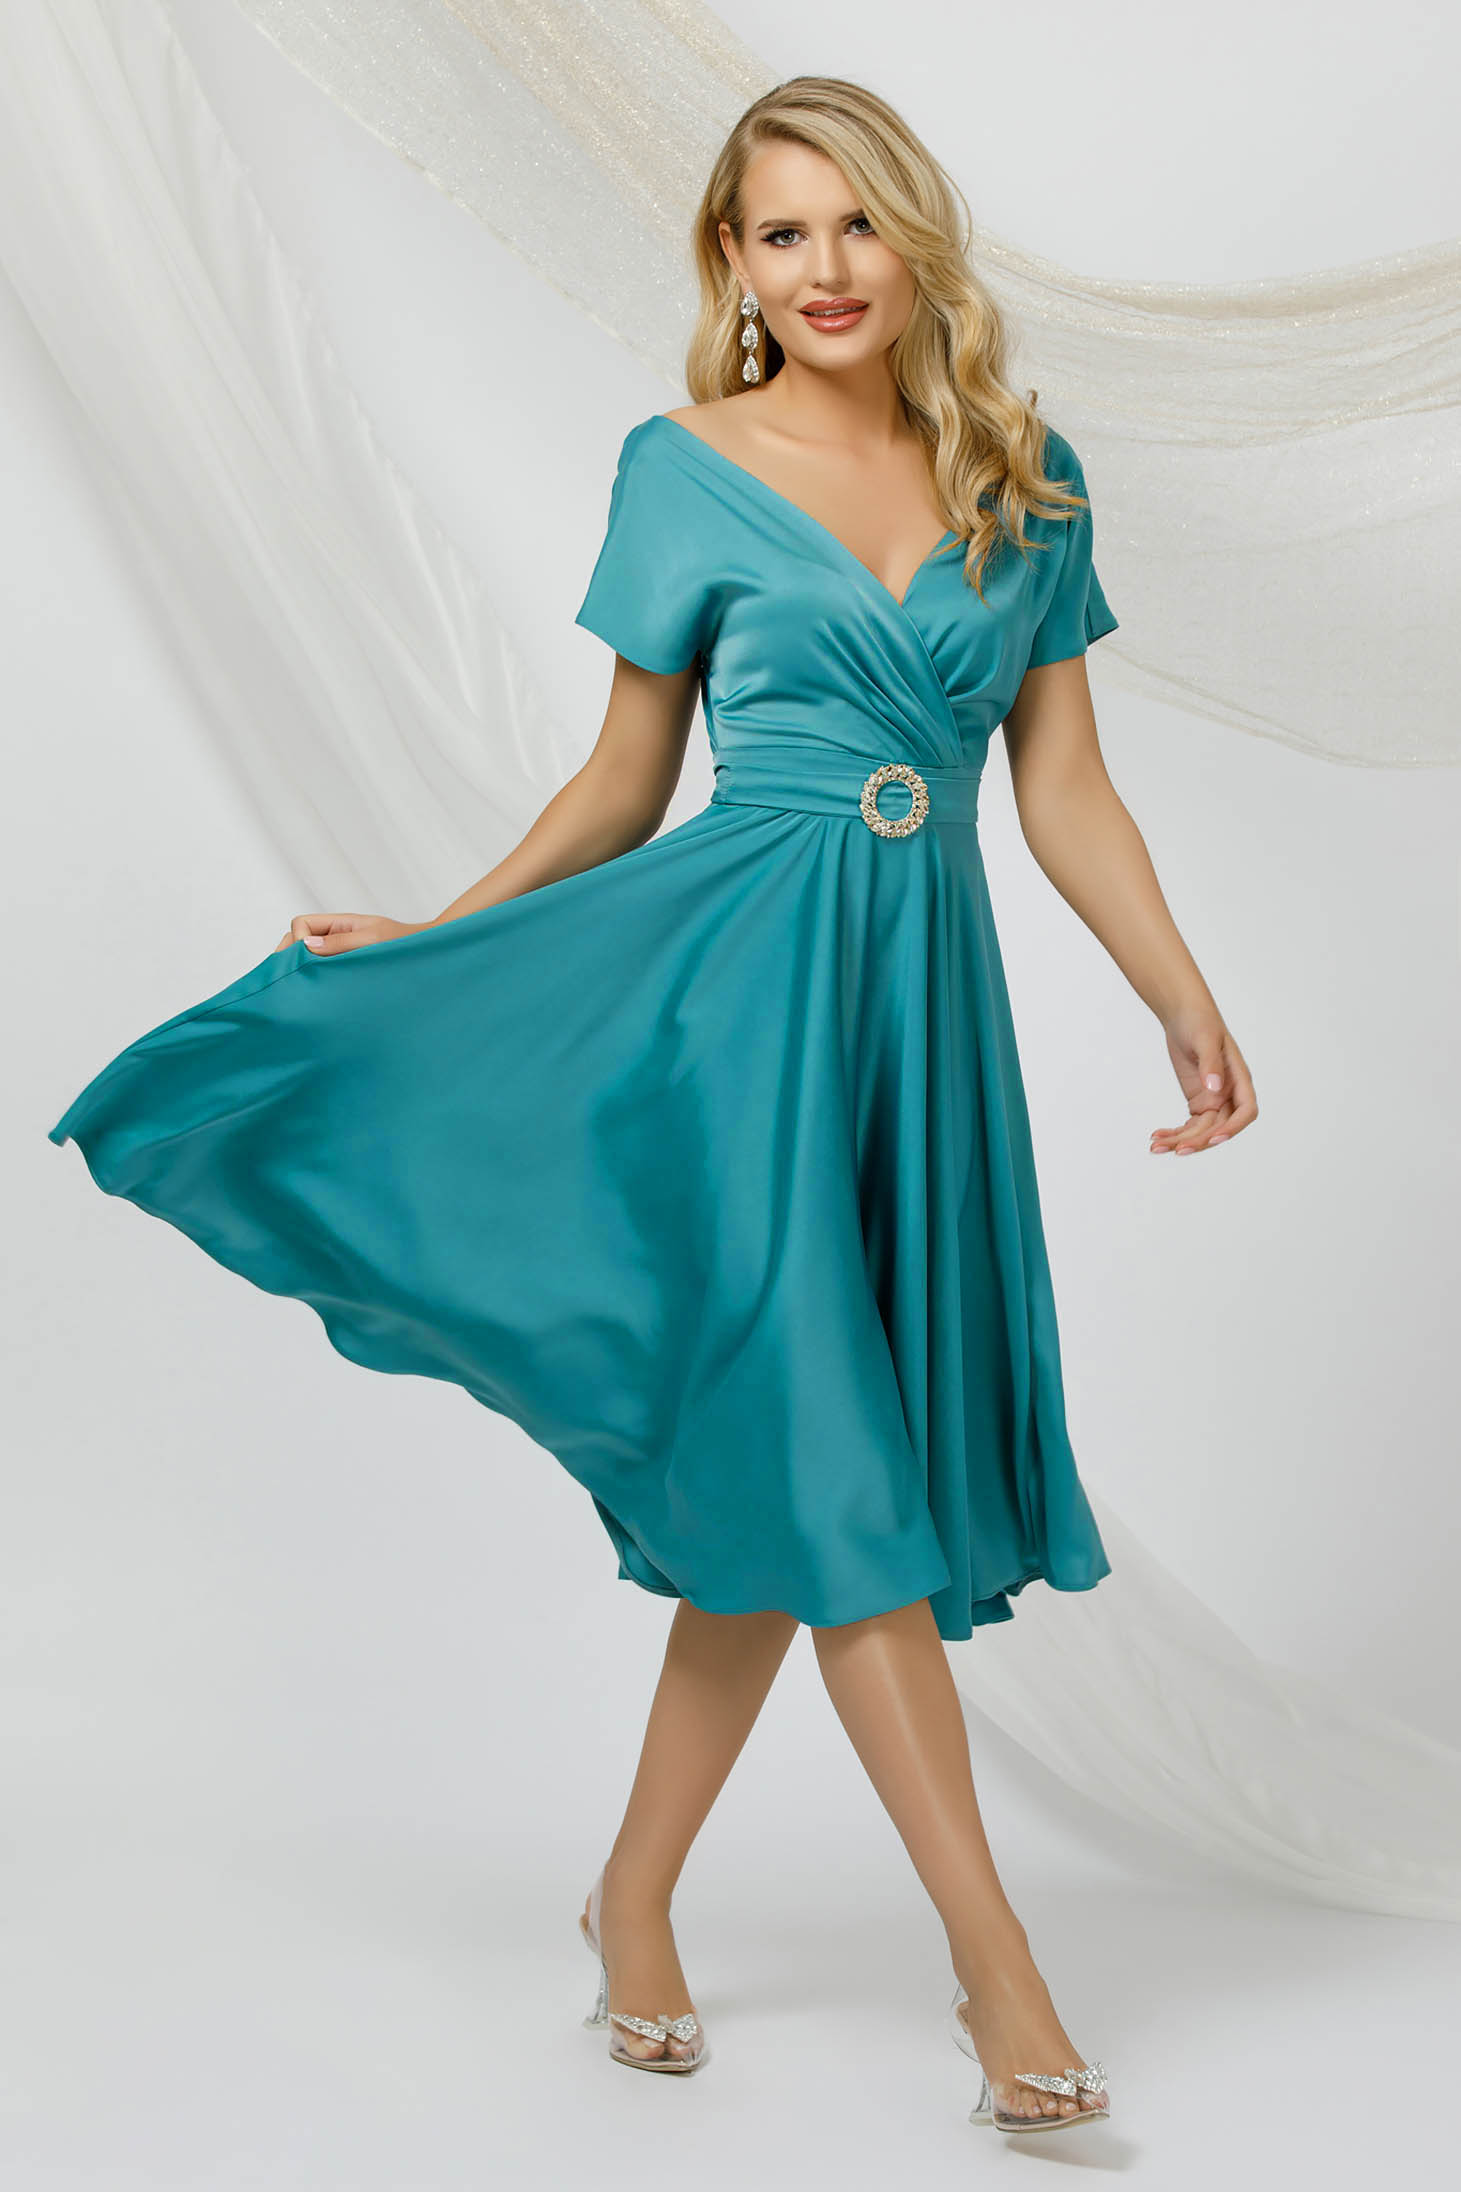 Turquoise dress cloche midi from satin with tie back belt